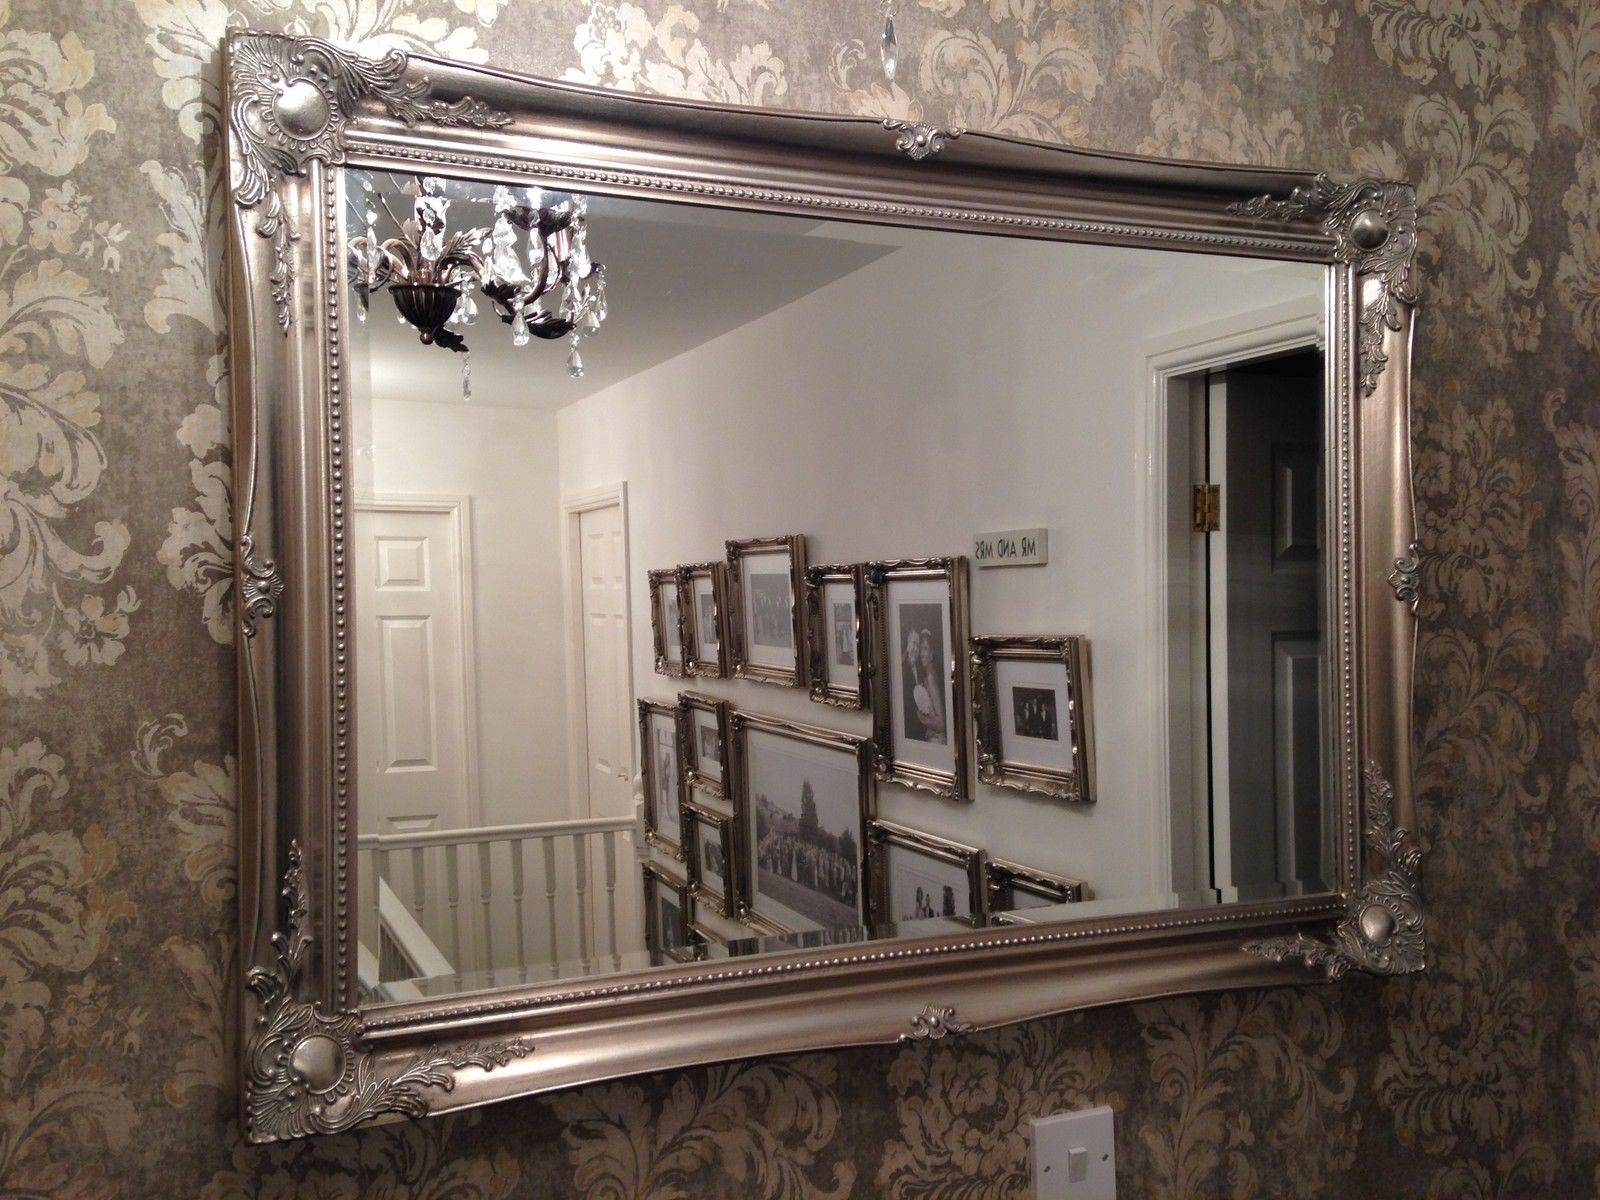 Classic Impression On Antique Wall Mirrors | Vwho For Silver Vintage Mirrors (View 5 of 15)